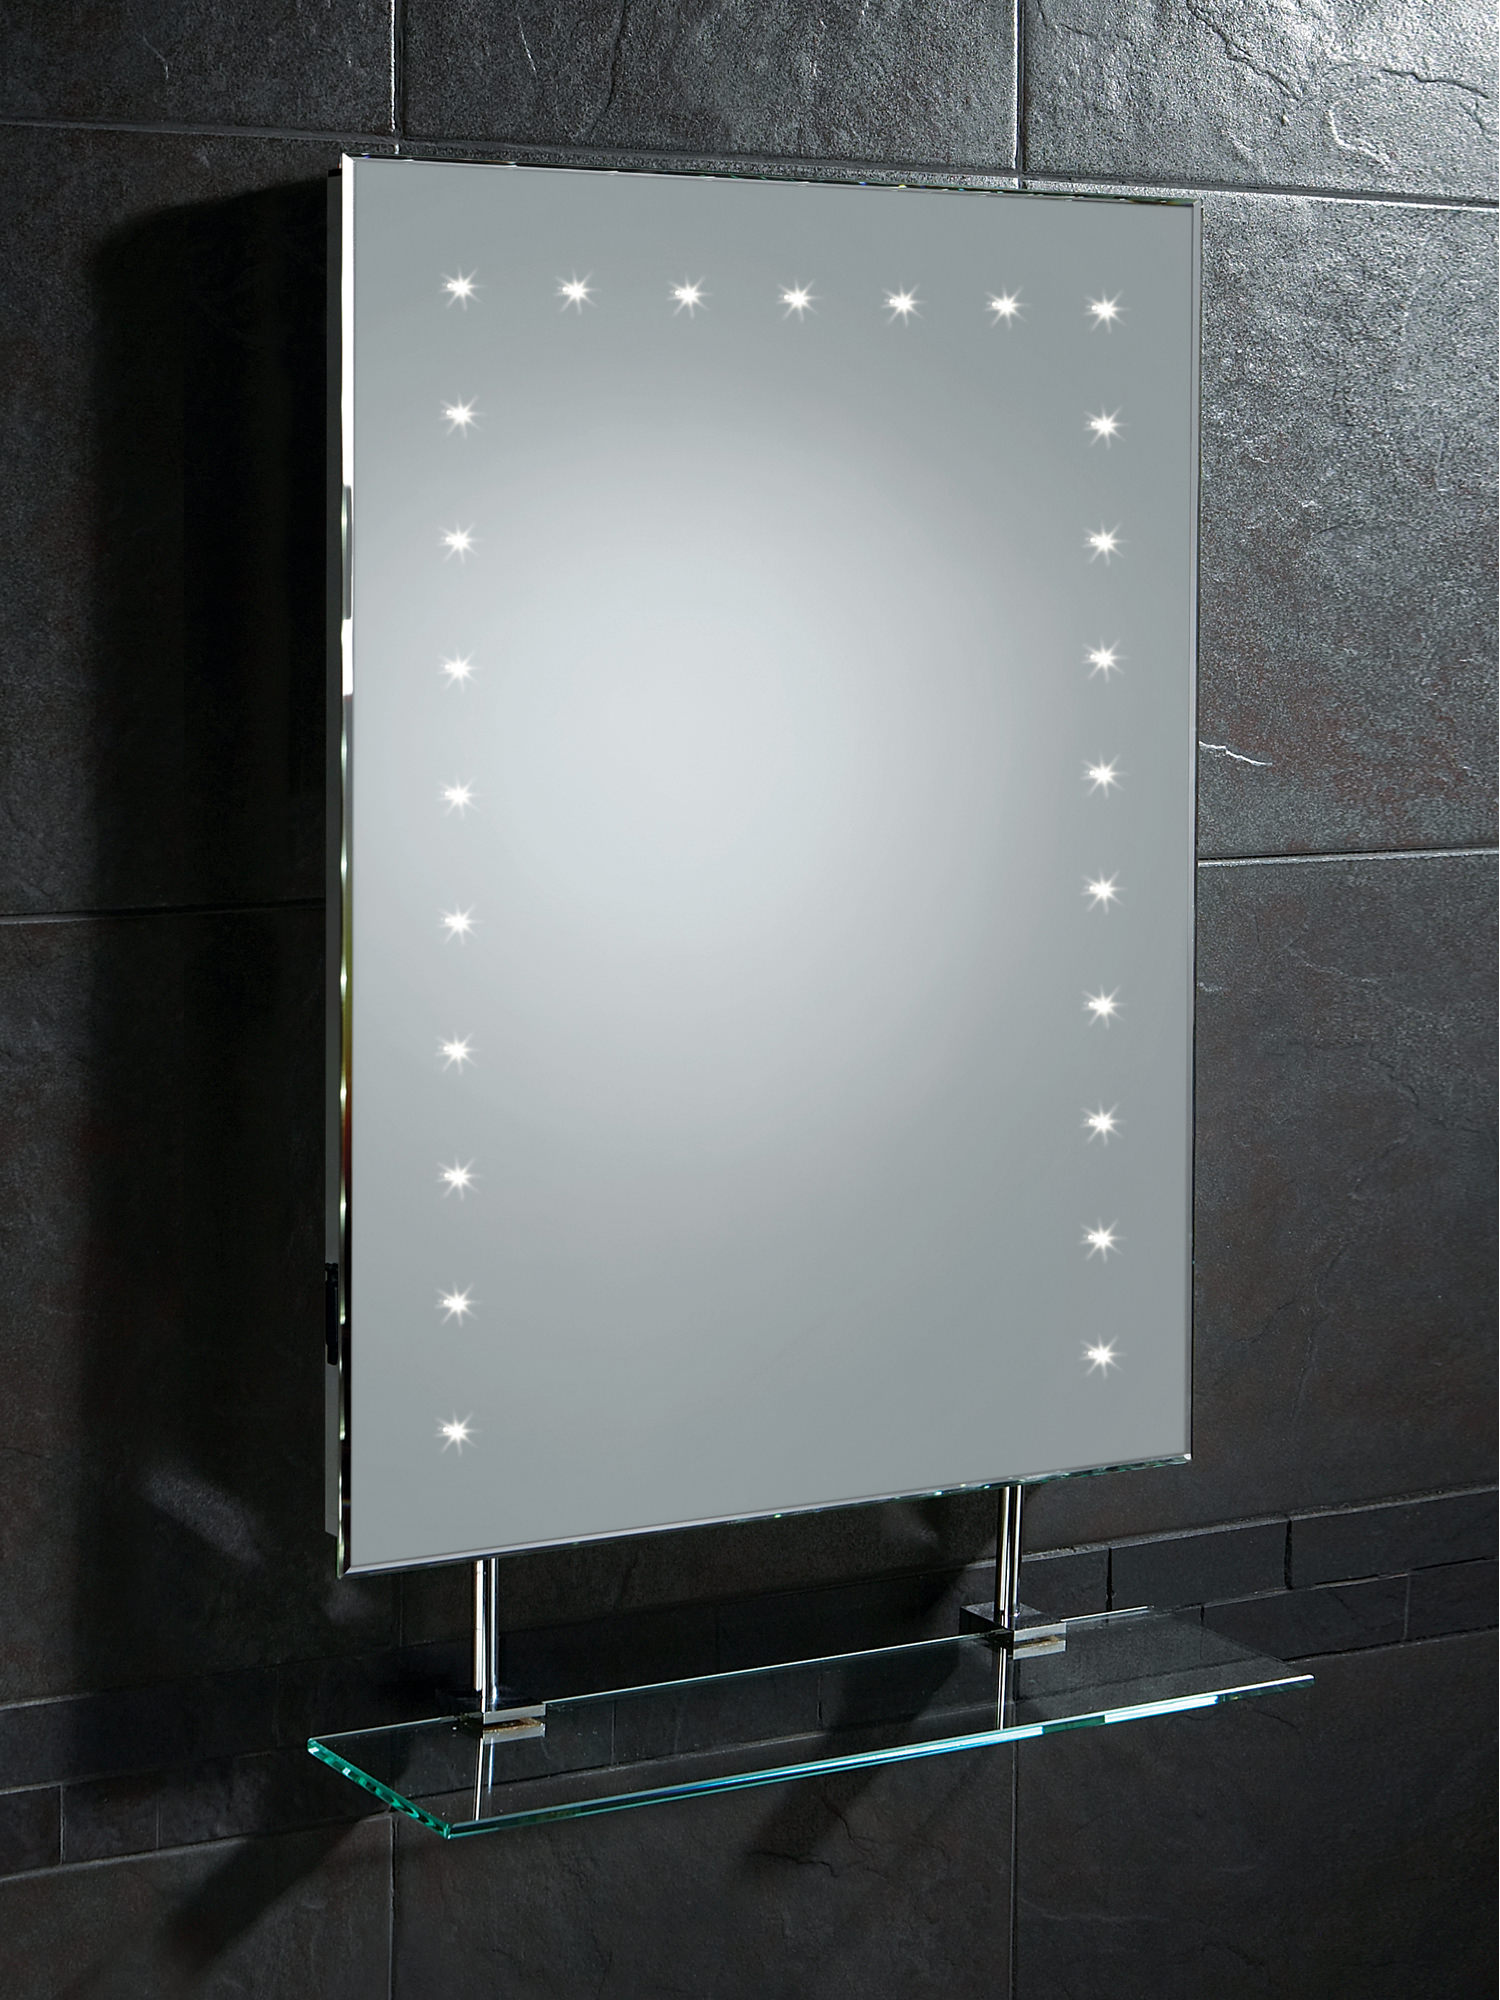 perfect bathroom led the flick and routine shock into we with switch first blog light morning once stepping your squinting in bright thing at mirrors